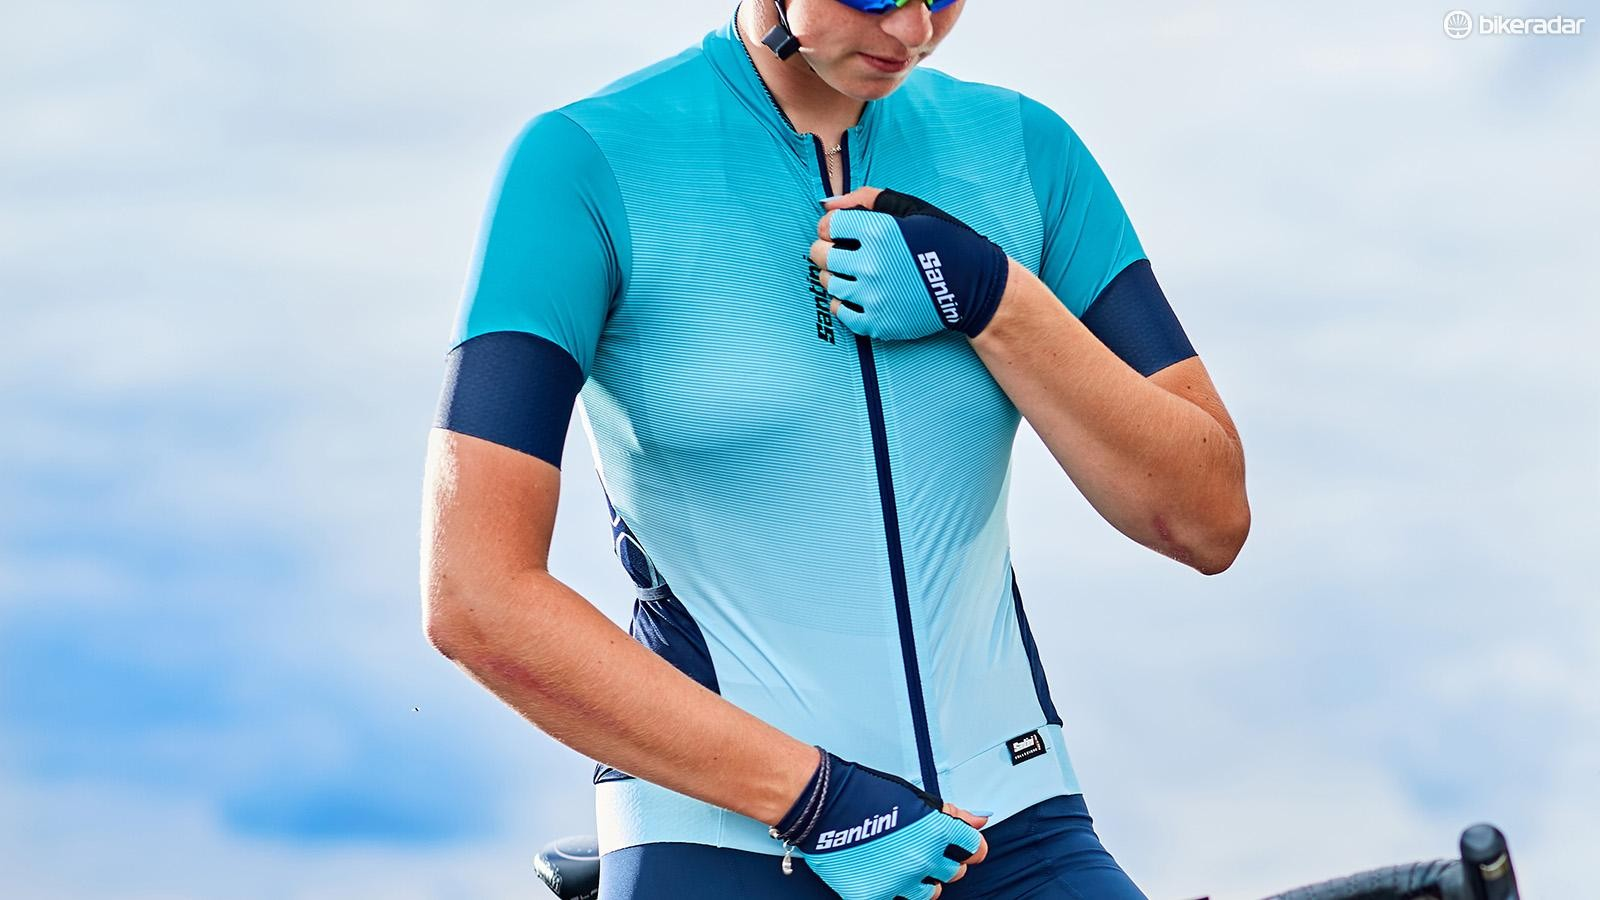 A race-fitted performance jersey that lives up to its price tag